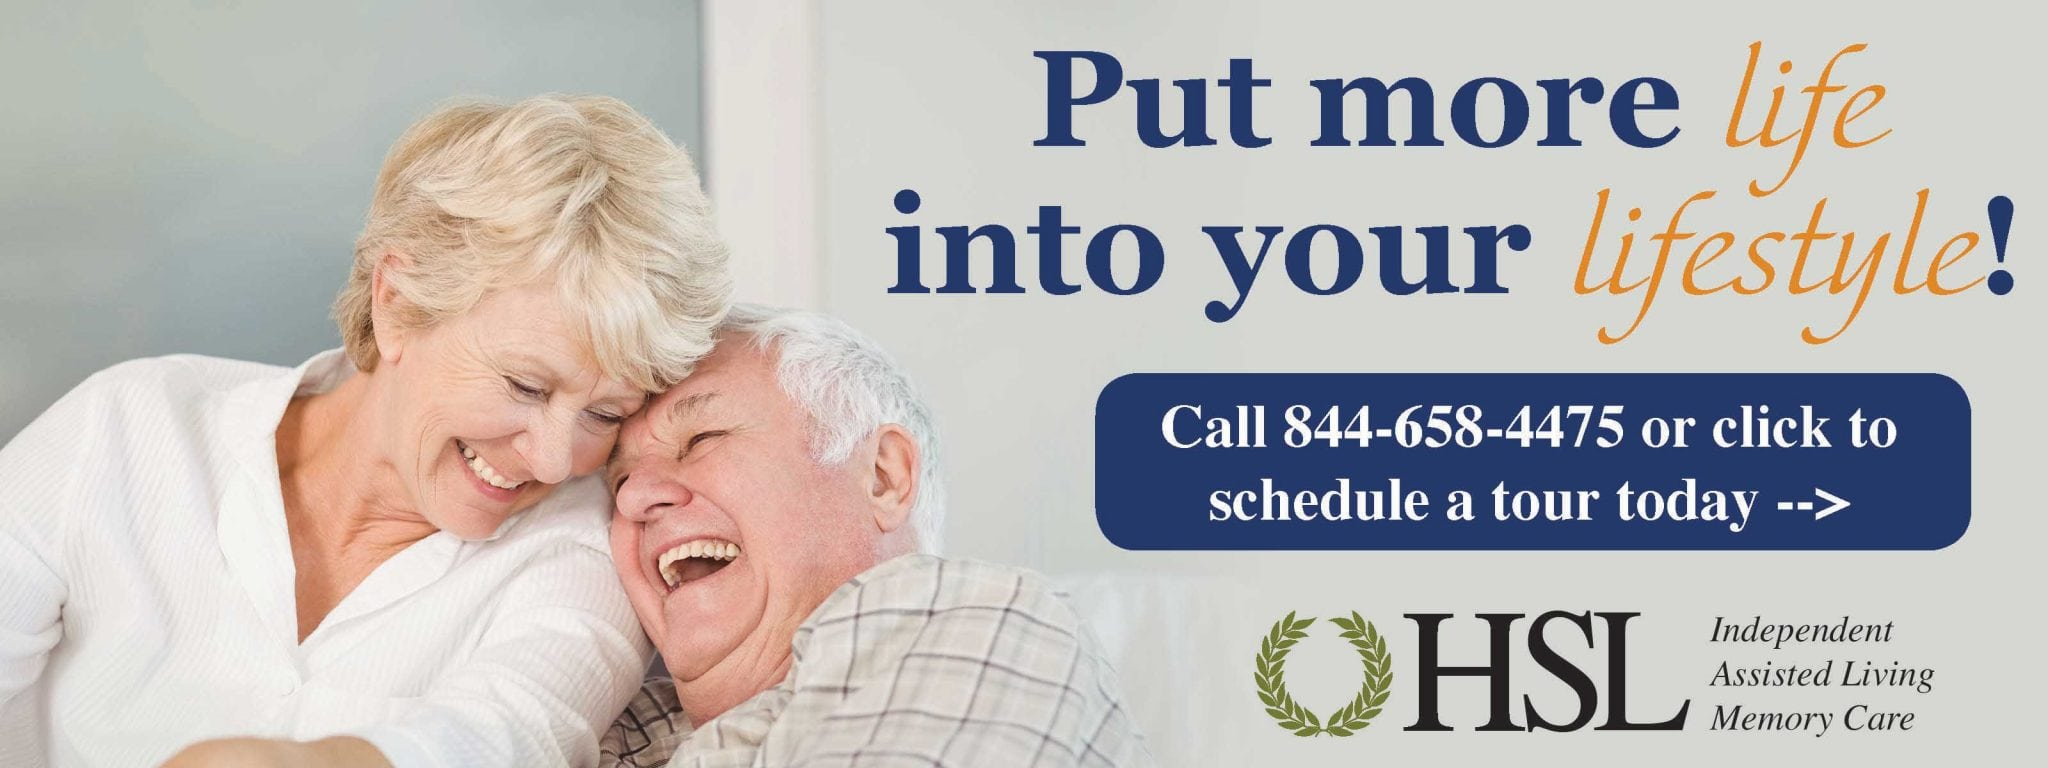 Heritage Senior Living Schedule a Tour Today